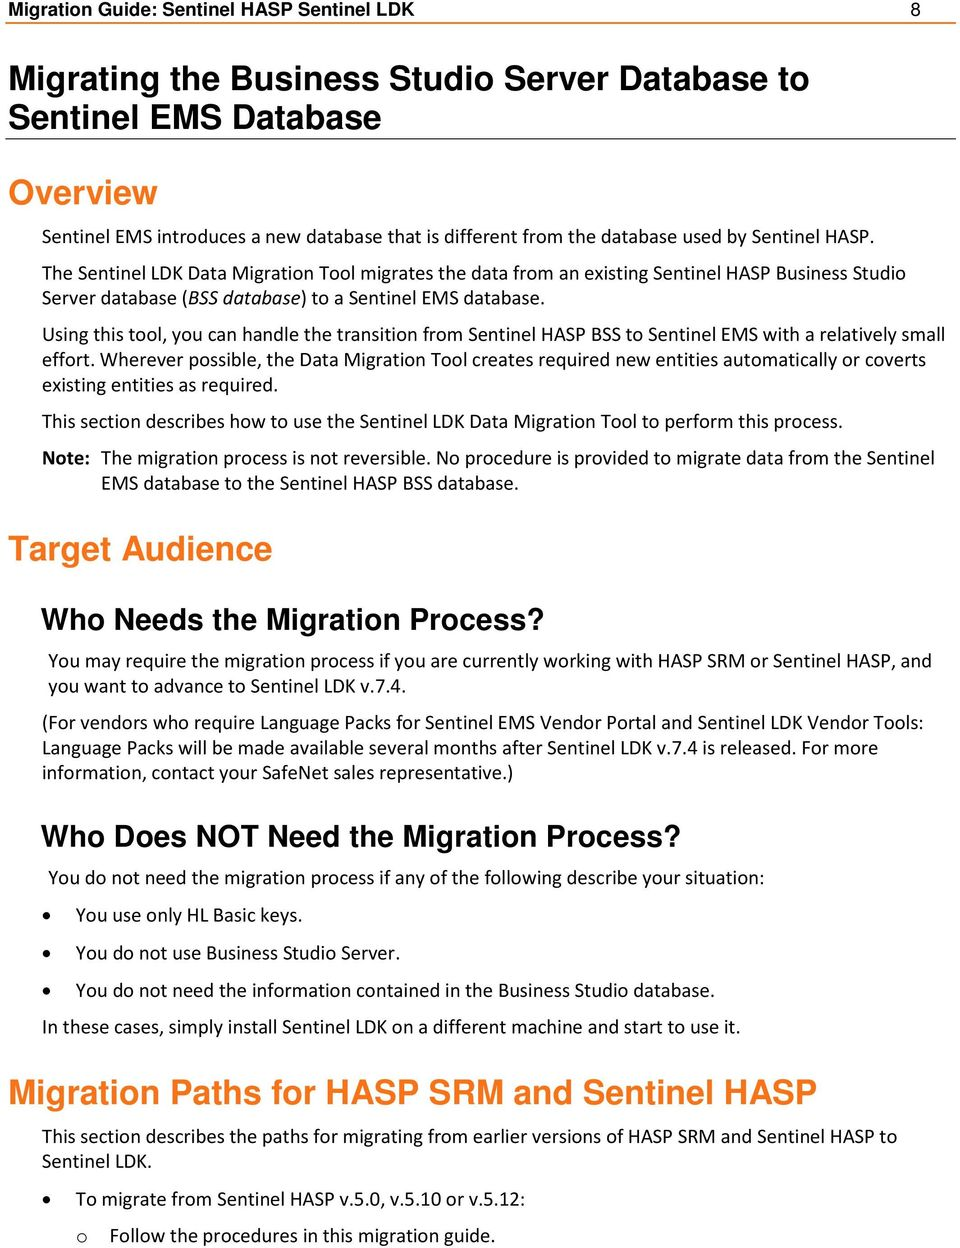 Migration Guide  Sentinel HASP to Sentinel LDK - PDF